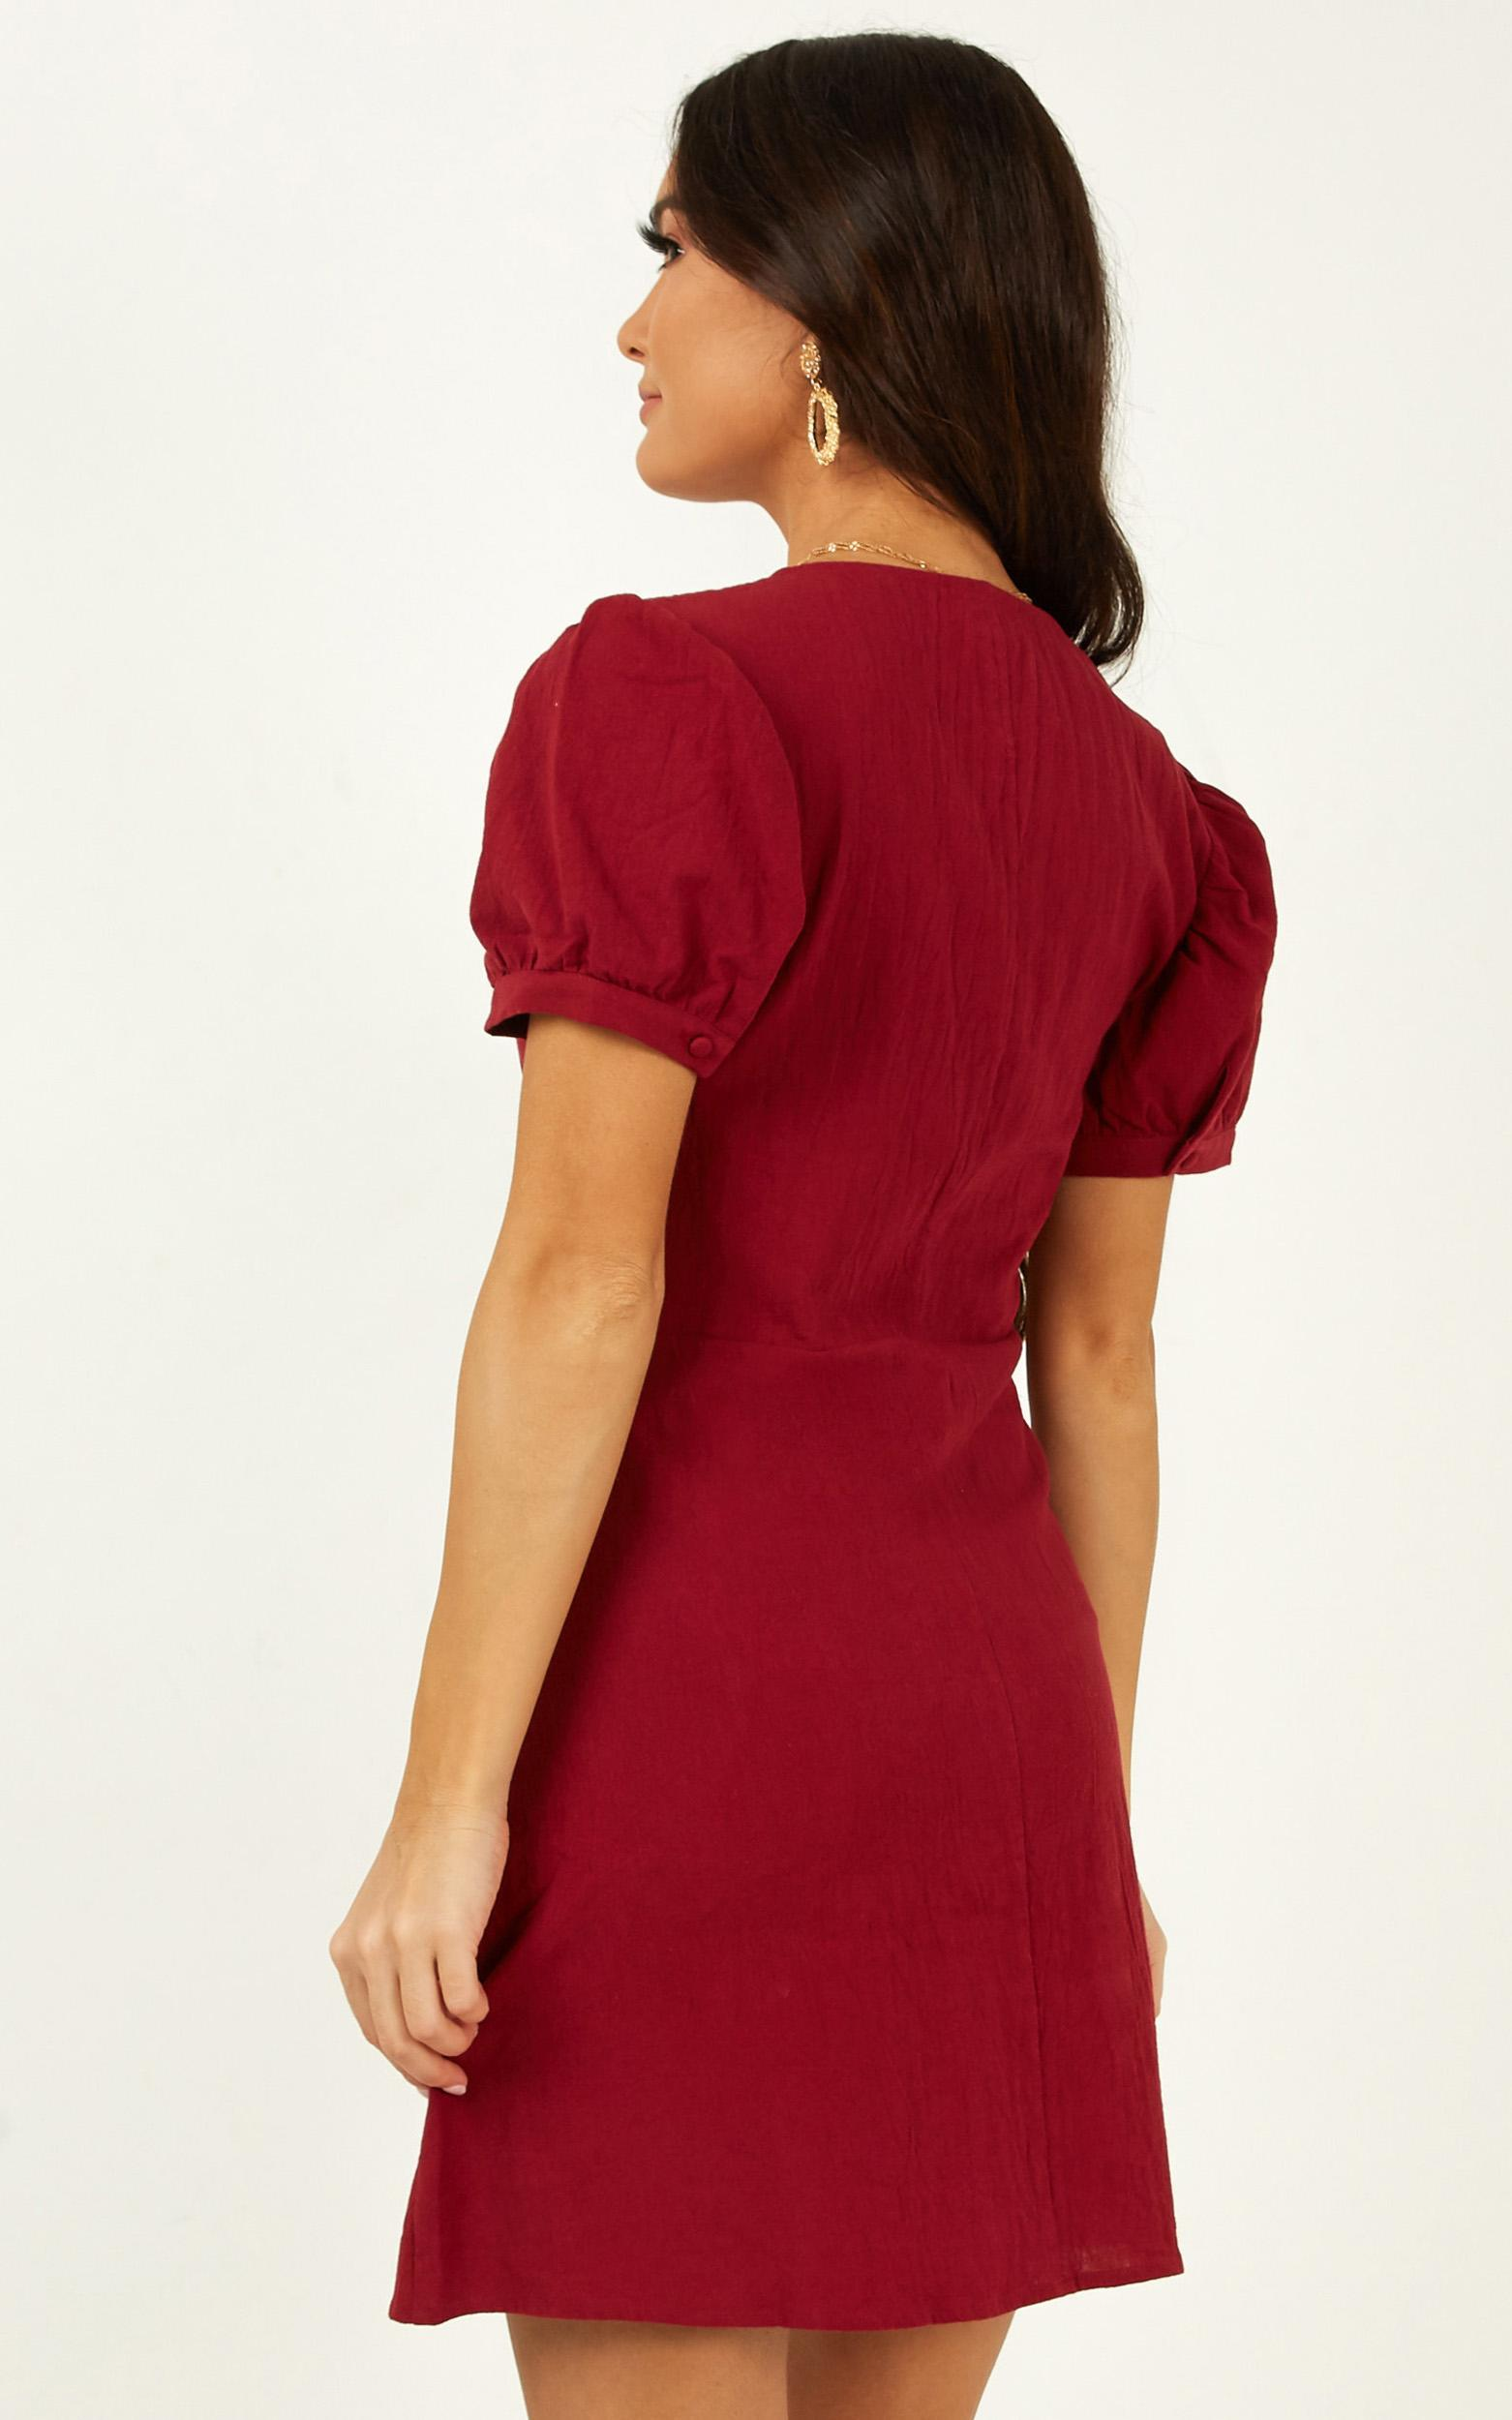 Morning Vibes Dress in wine - 20 (XXXXL), Wine, hi-res image number null